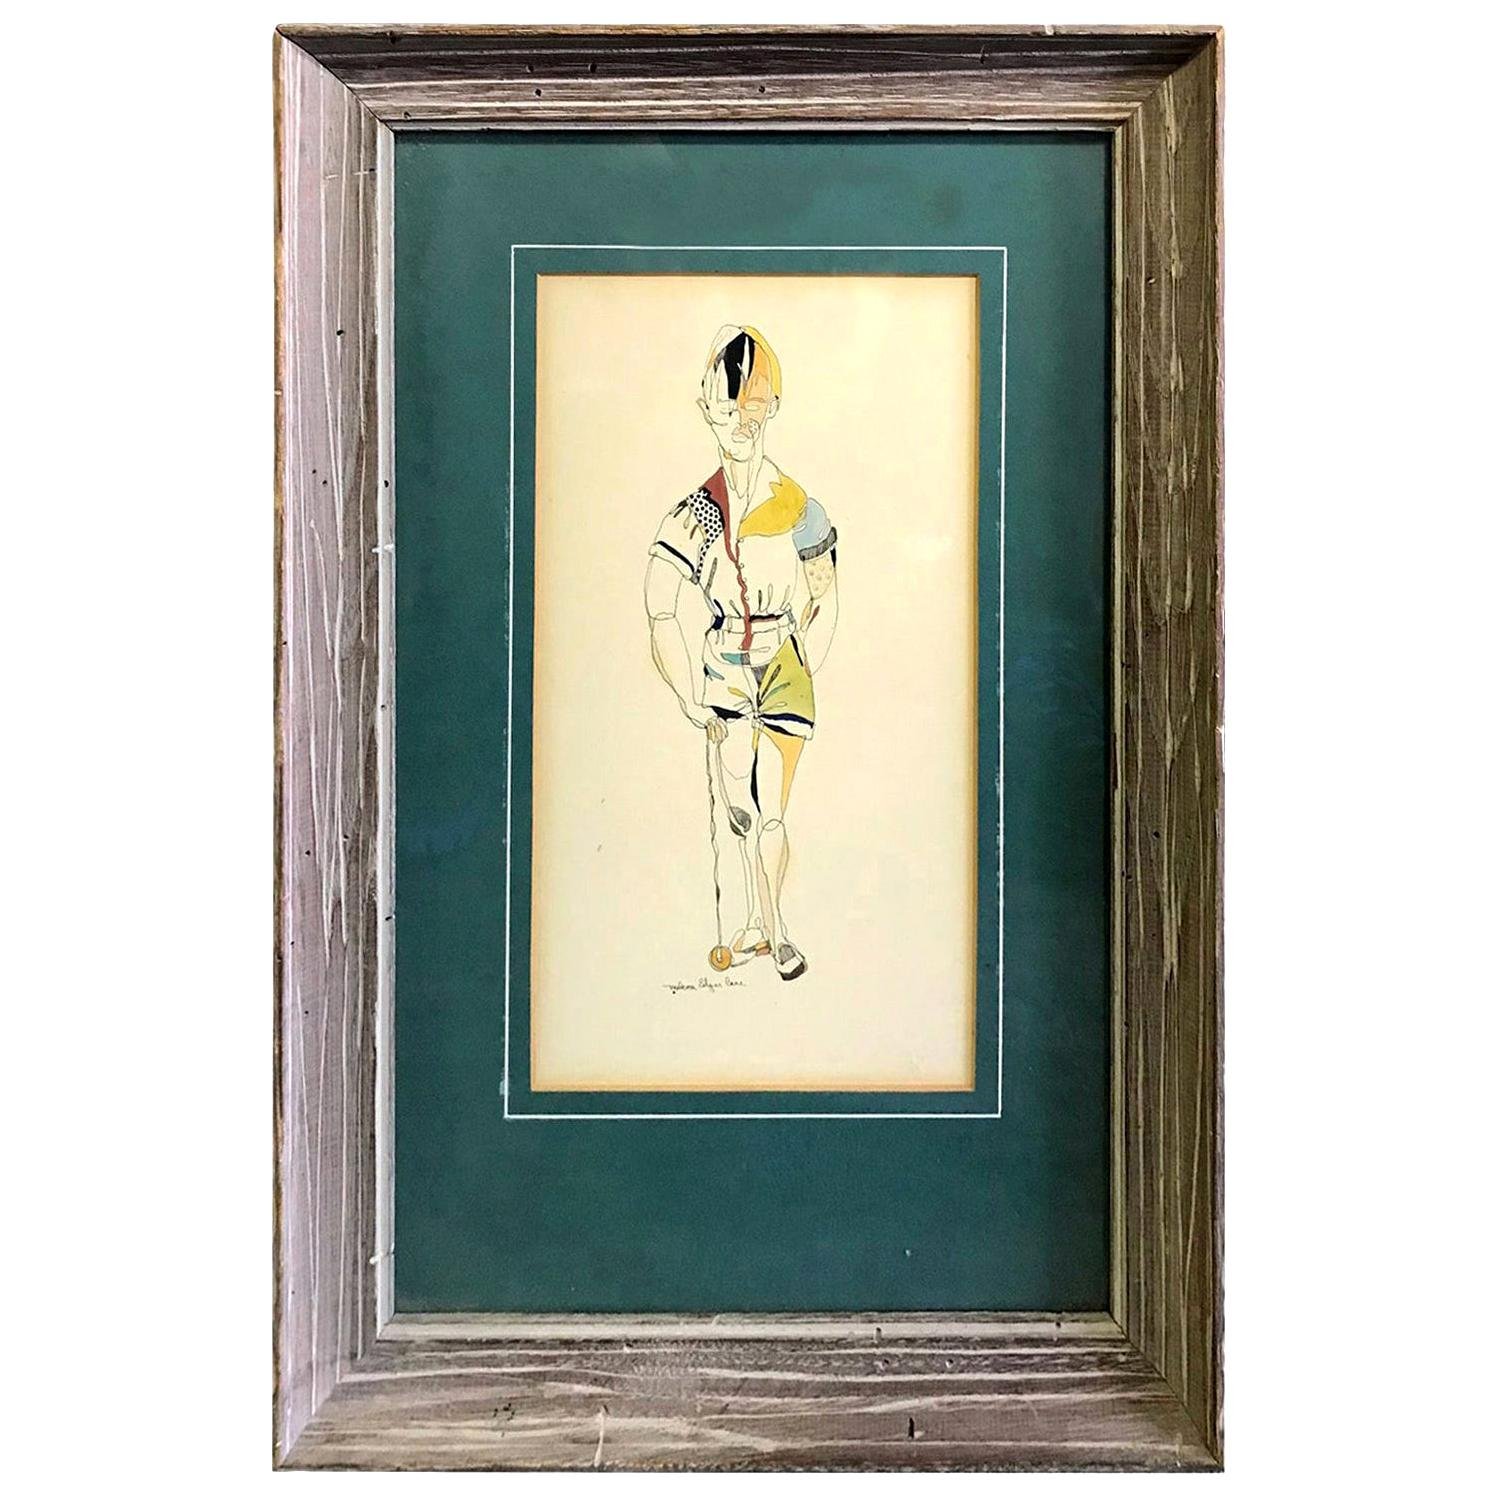 Malcolm Edgar Case Signed Original Water Color and Ink on Paper